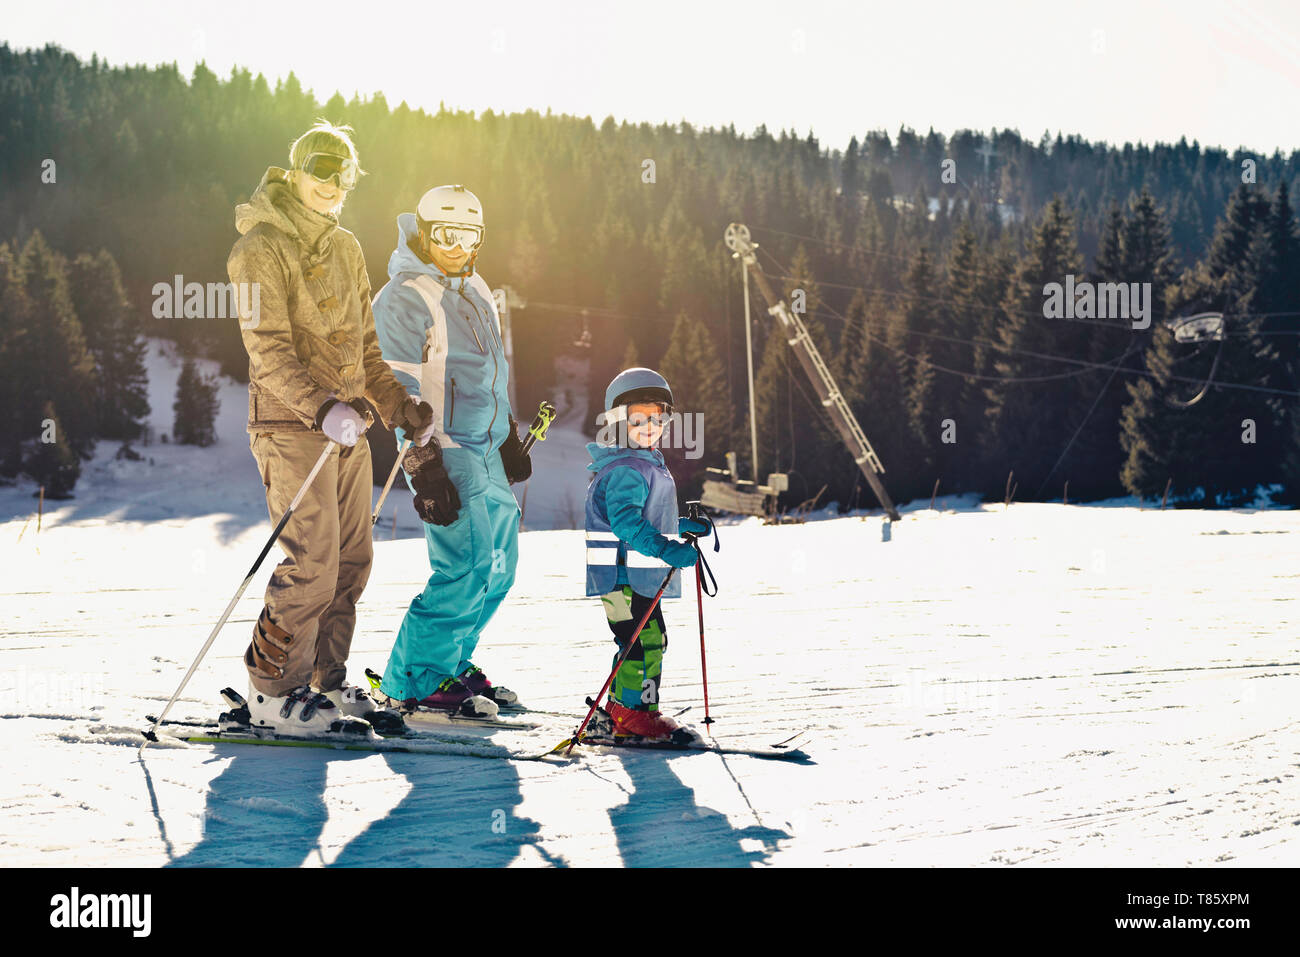 Family on skiing holiday - Stock Image